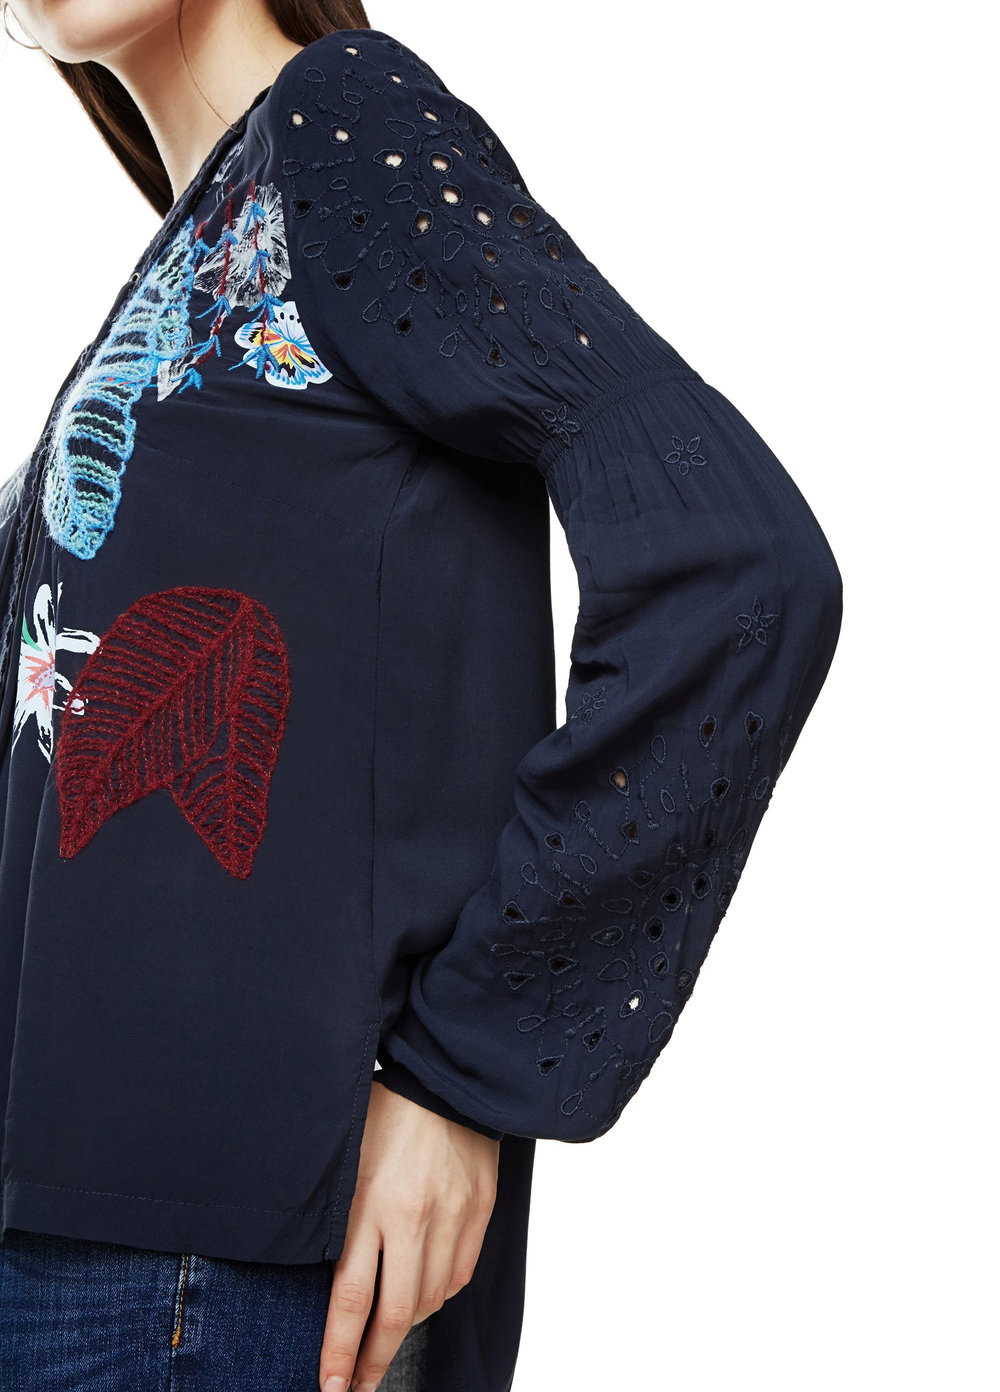 Desigual Sotetkek Polo Giles available in our Broadbeach Store Style #17WWWBW56